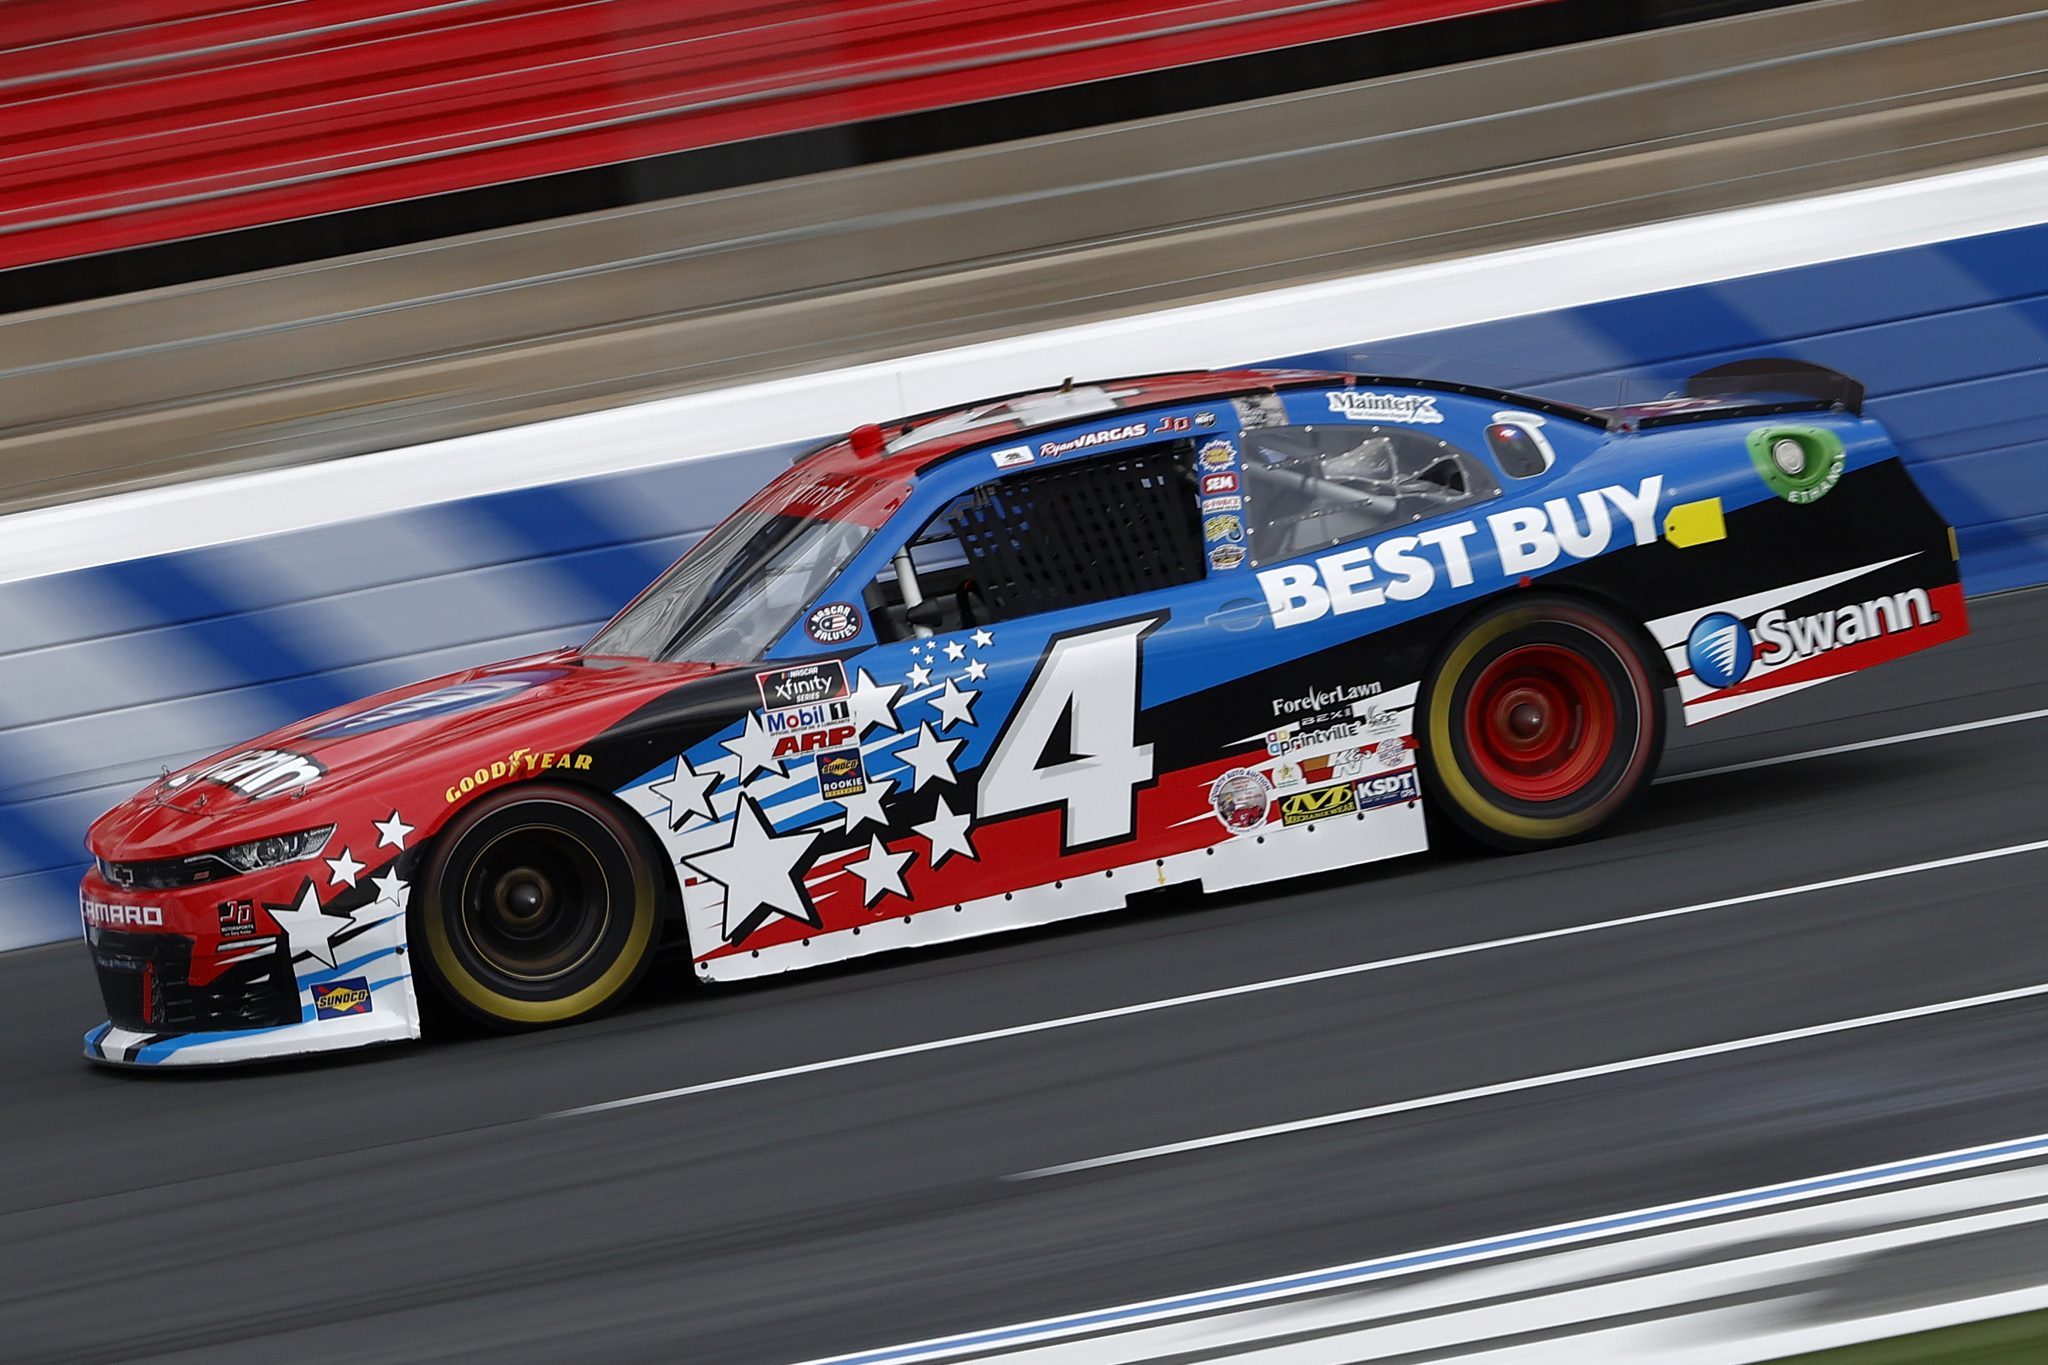 CONCORD, NORTH CAROLINA - MAY 28: Ryan Vargas, driver of the #4 Swann Security/Best Buy Chevrolet, drives during practice for the NASCAR Xfinity Series Alsco Uniforms 300 at Charlotte Motor Speedway on May 28, 2021 in Concord, North Carolina. (Photo by Maddie Meyer/Getty Images)   Getty Images